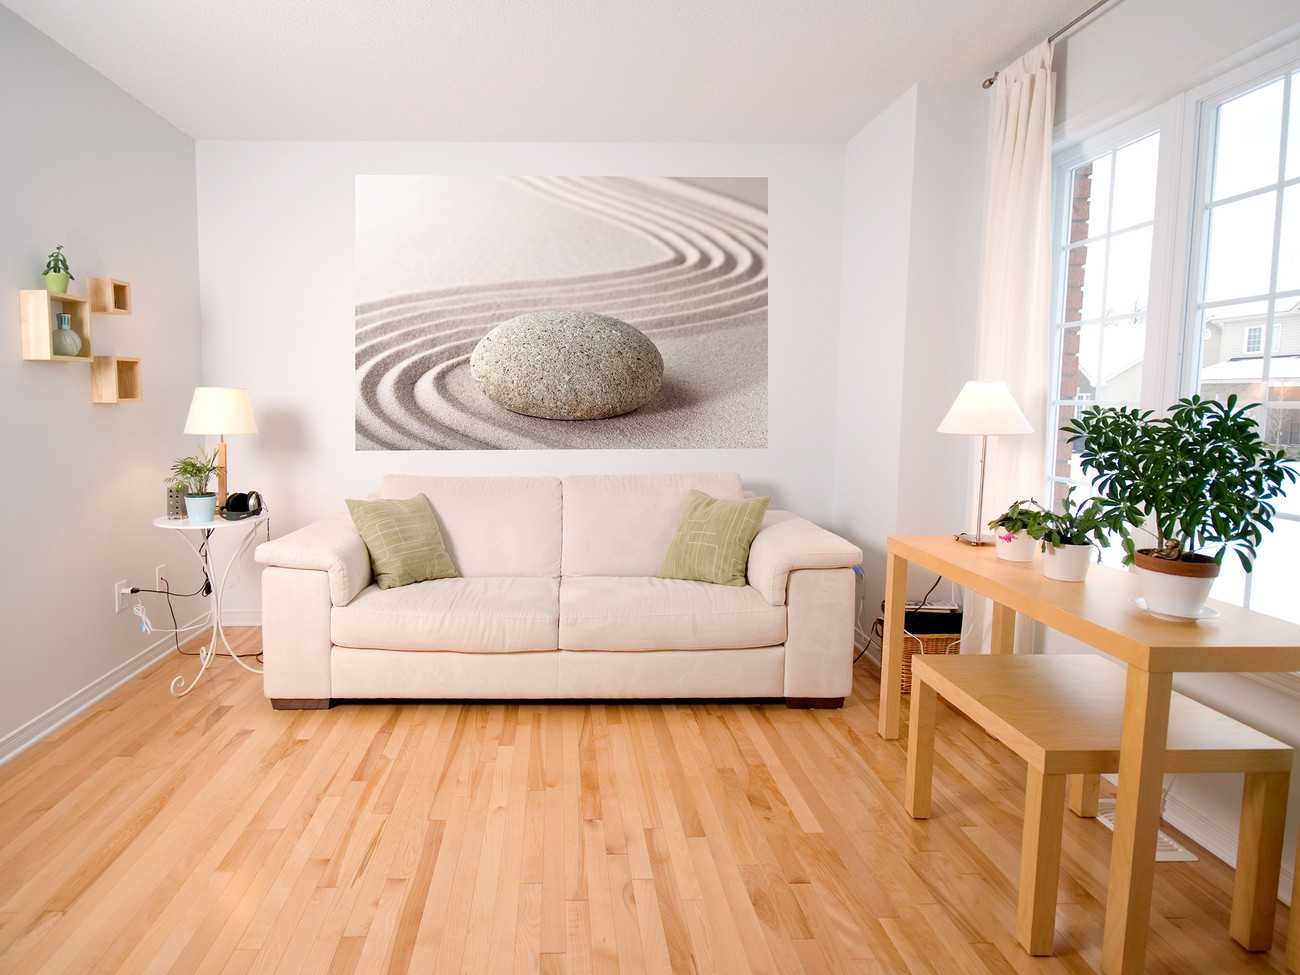 zen stone wall mural buy at europosters